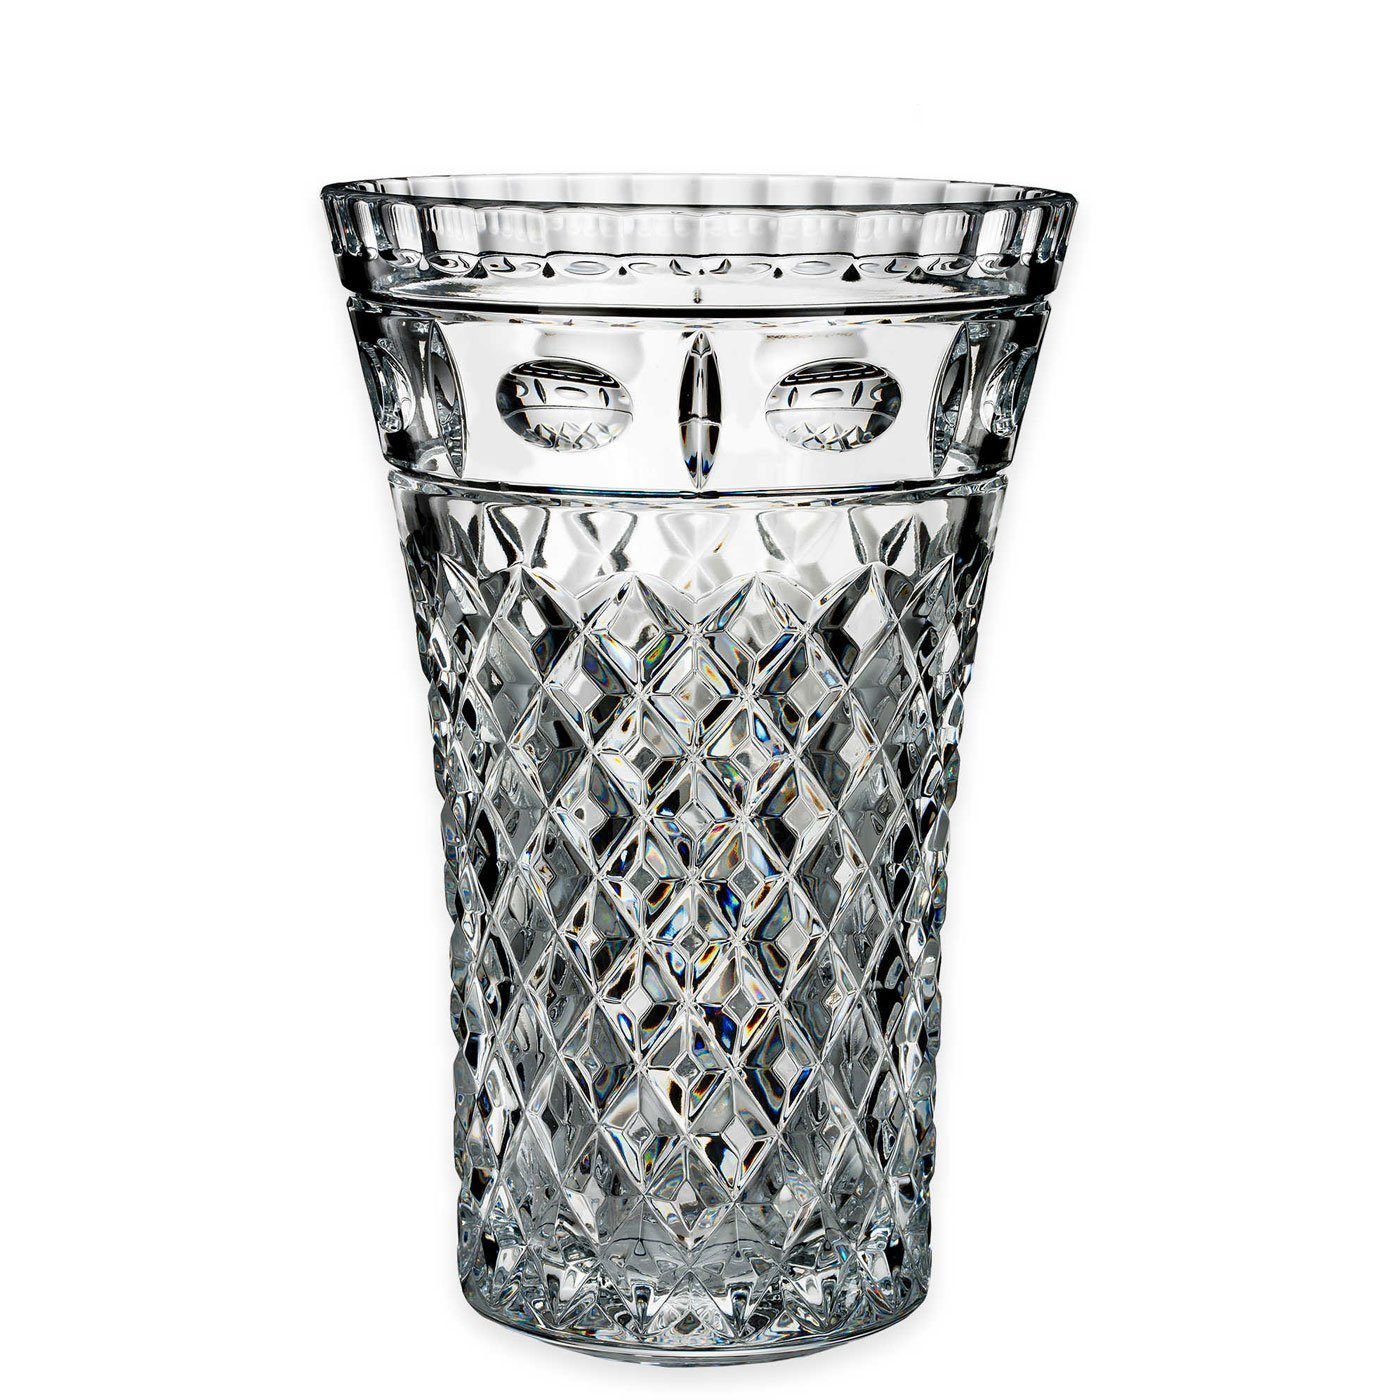 Buy waterford crystal hospitality pineapple vase 10quot tall recommended for you waterford crystal collectible pineapple vase reviewsmspy